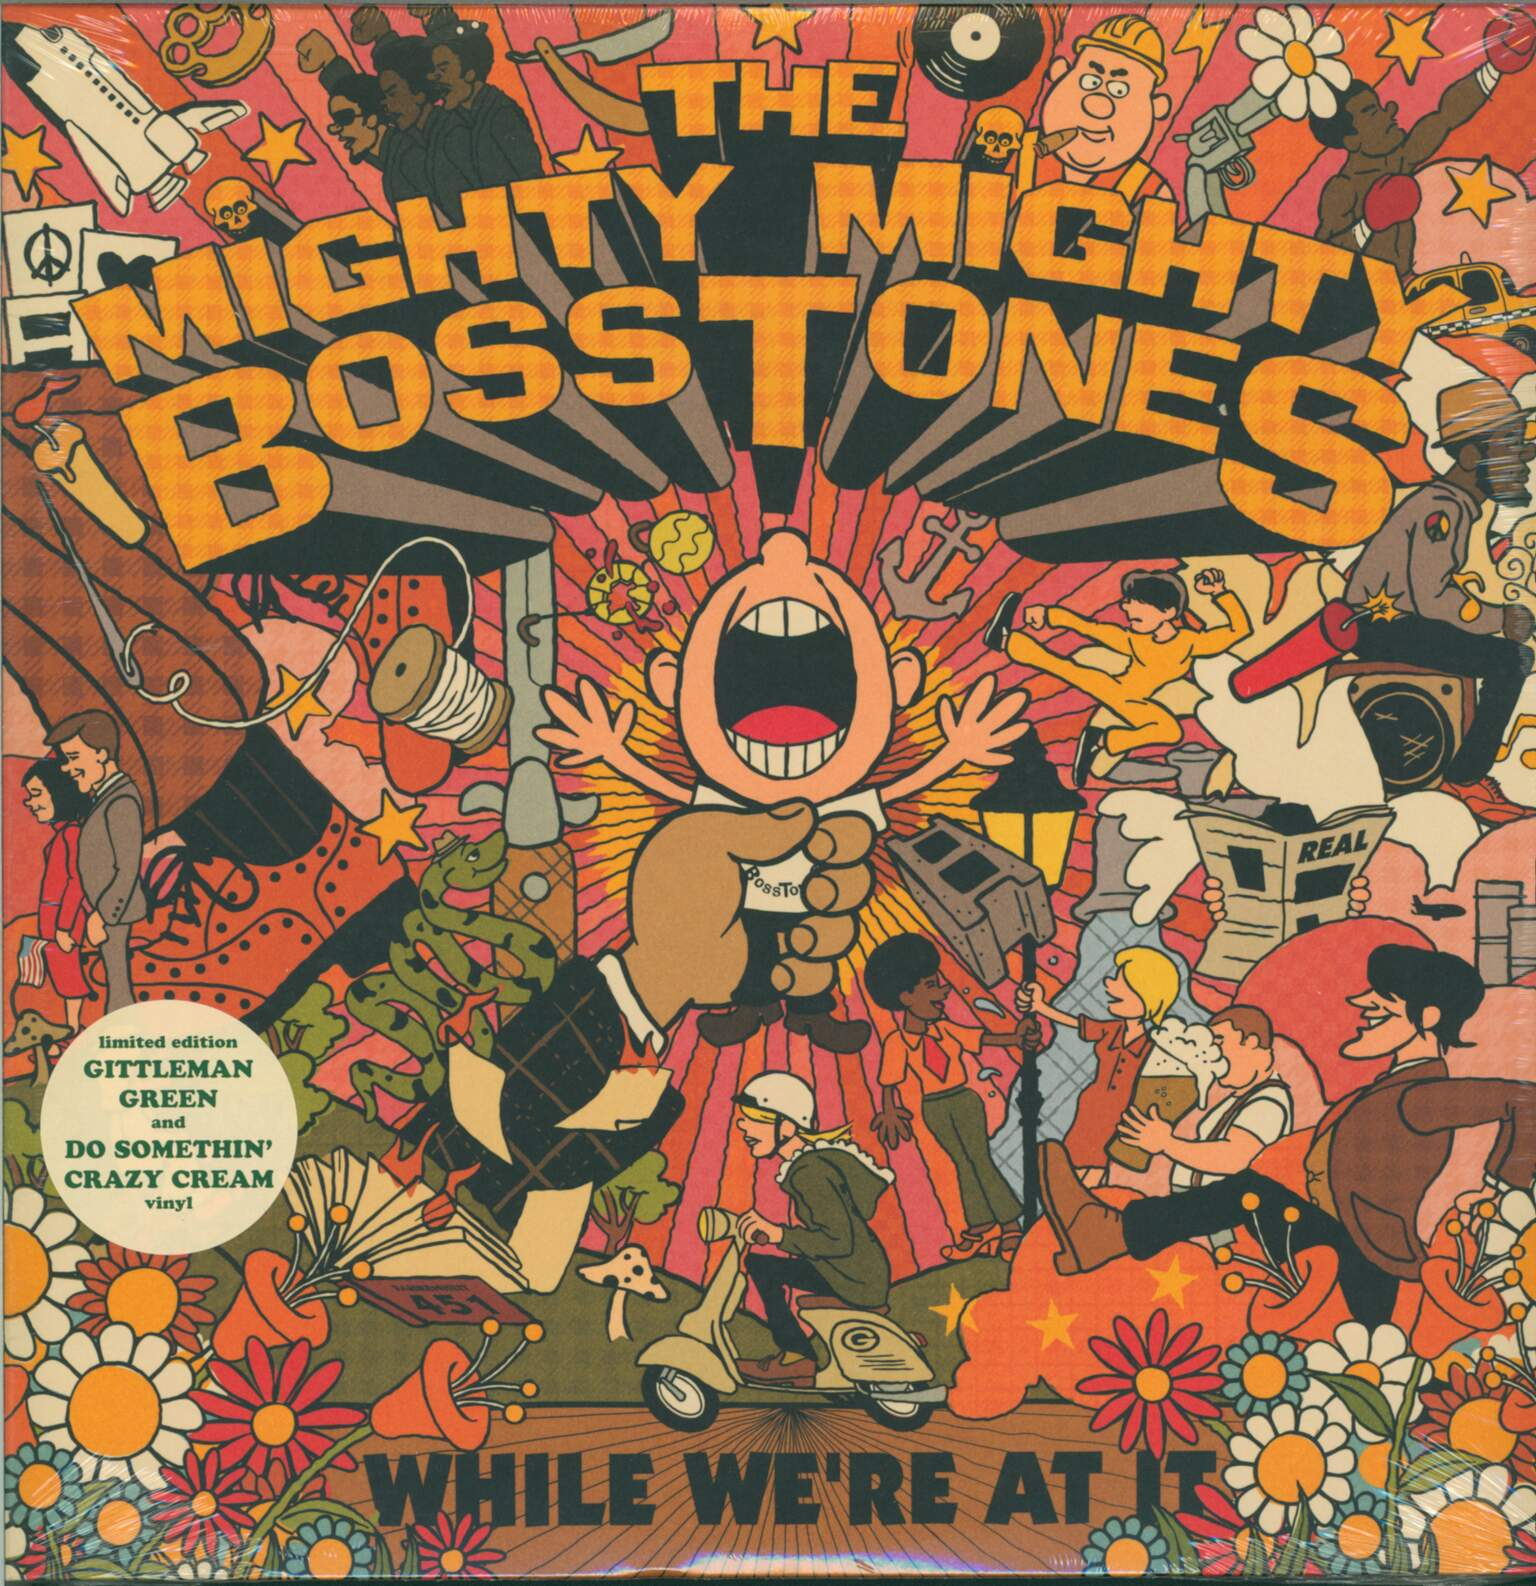 The Mighty Mighty Bosstones: While We're At It, 1×LP (Vinyl), 1×LP (Vinyl)